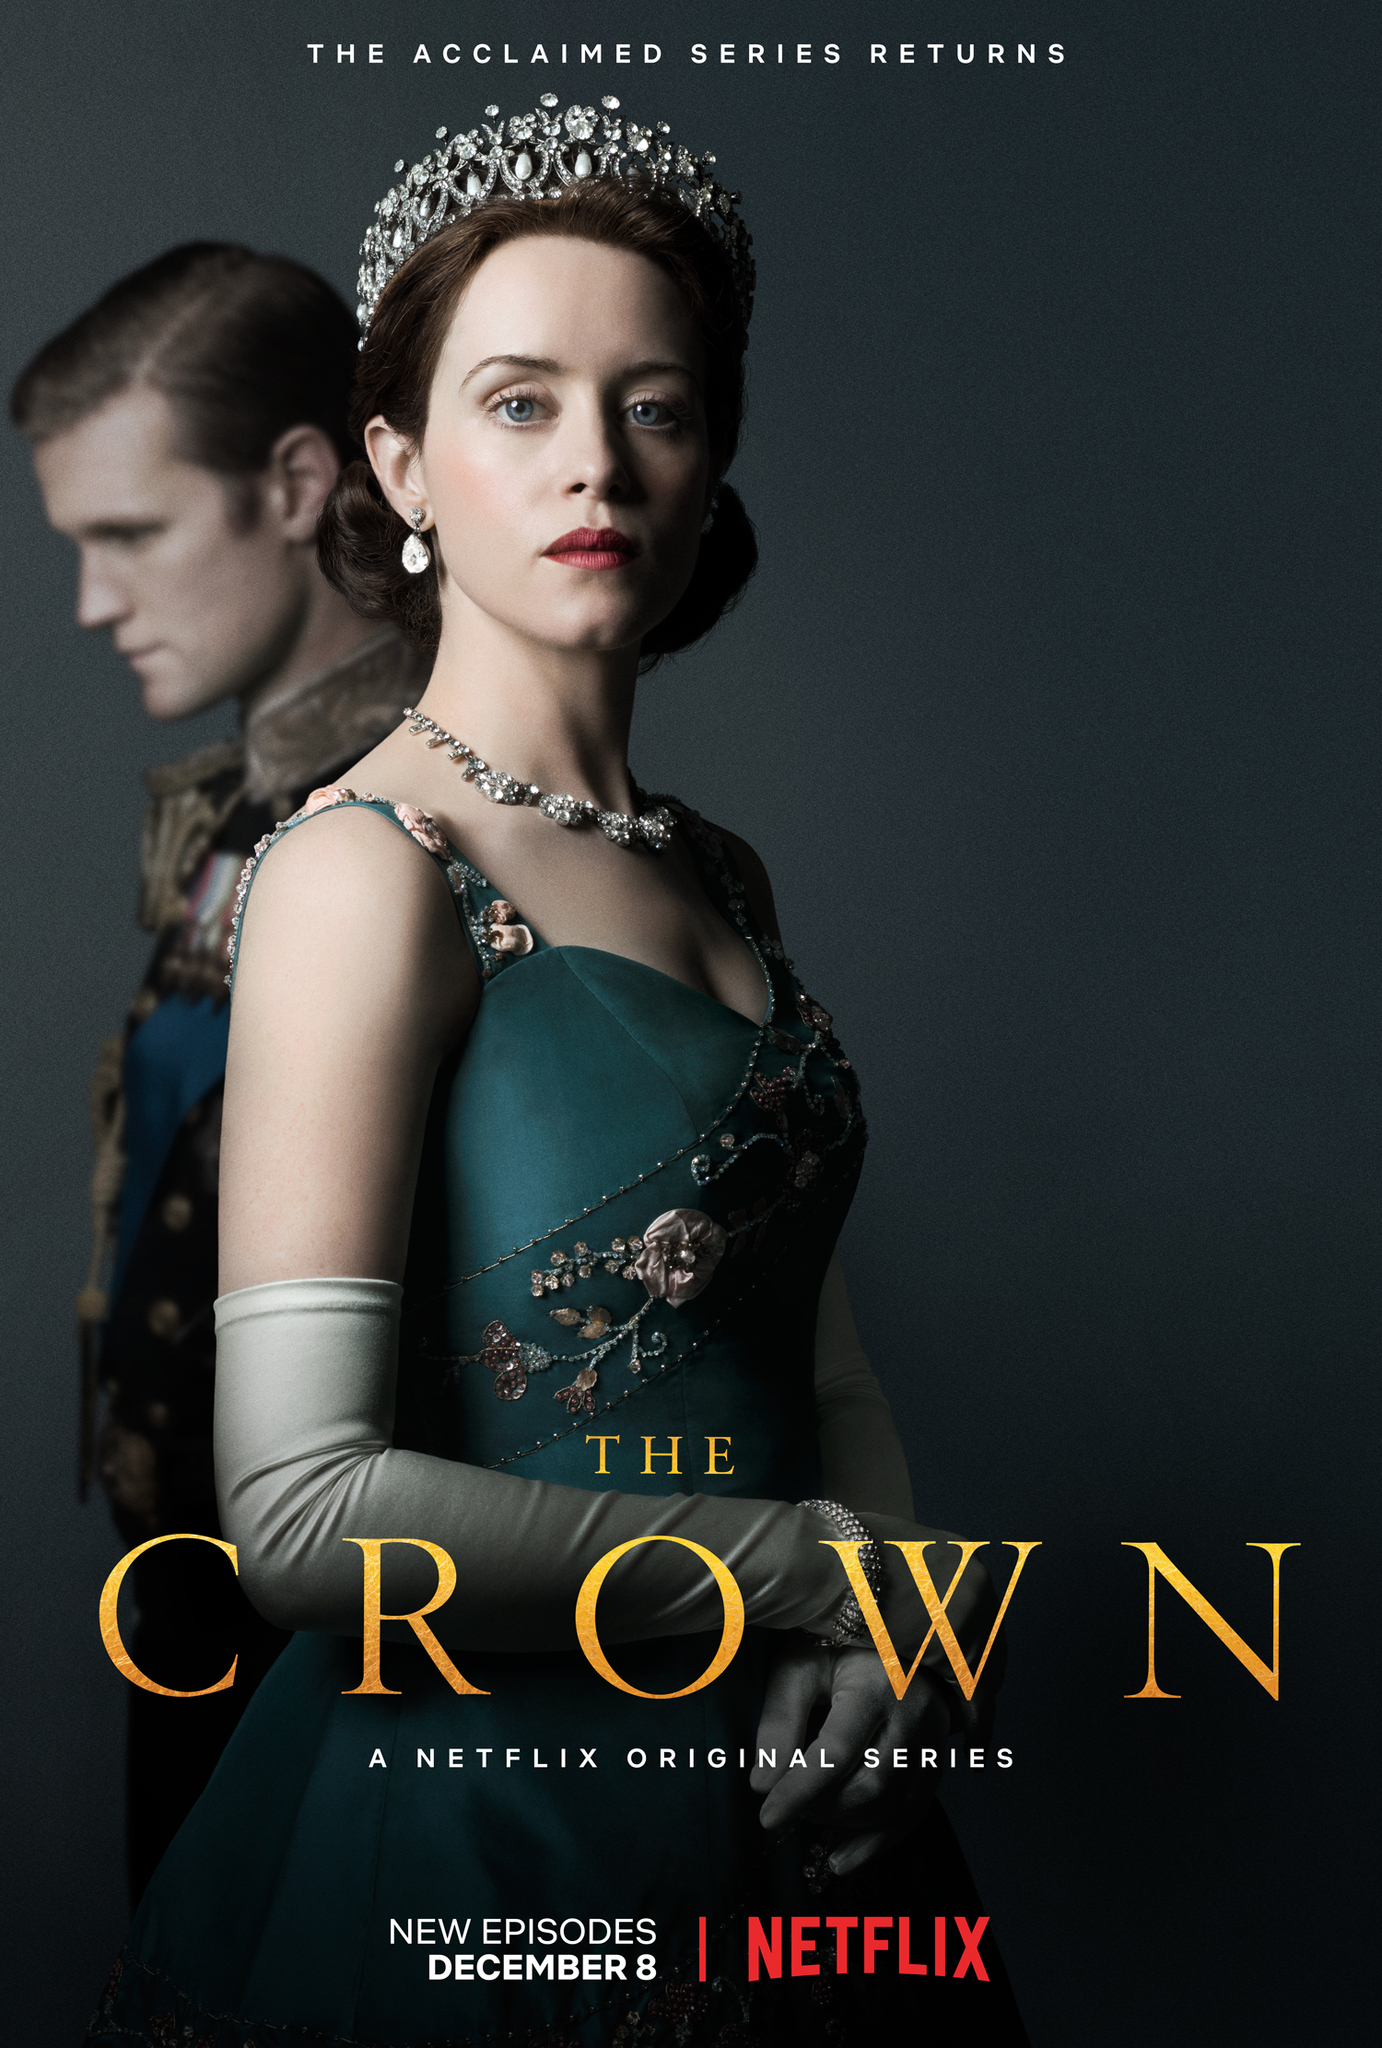 The.Crown.S02E01.iNTERNAL.MULTi.1080p.WEB.x264-CiELOS